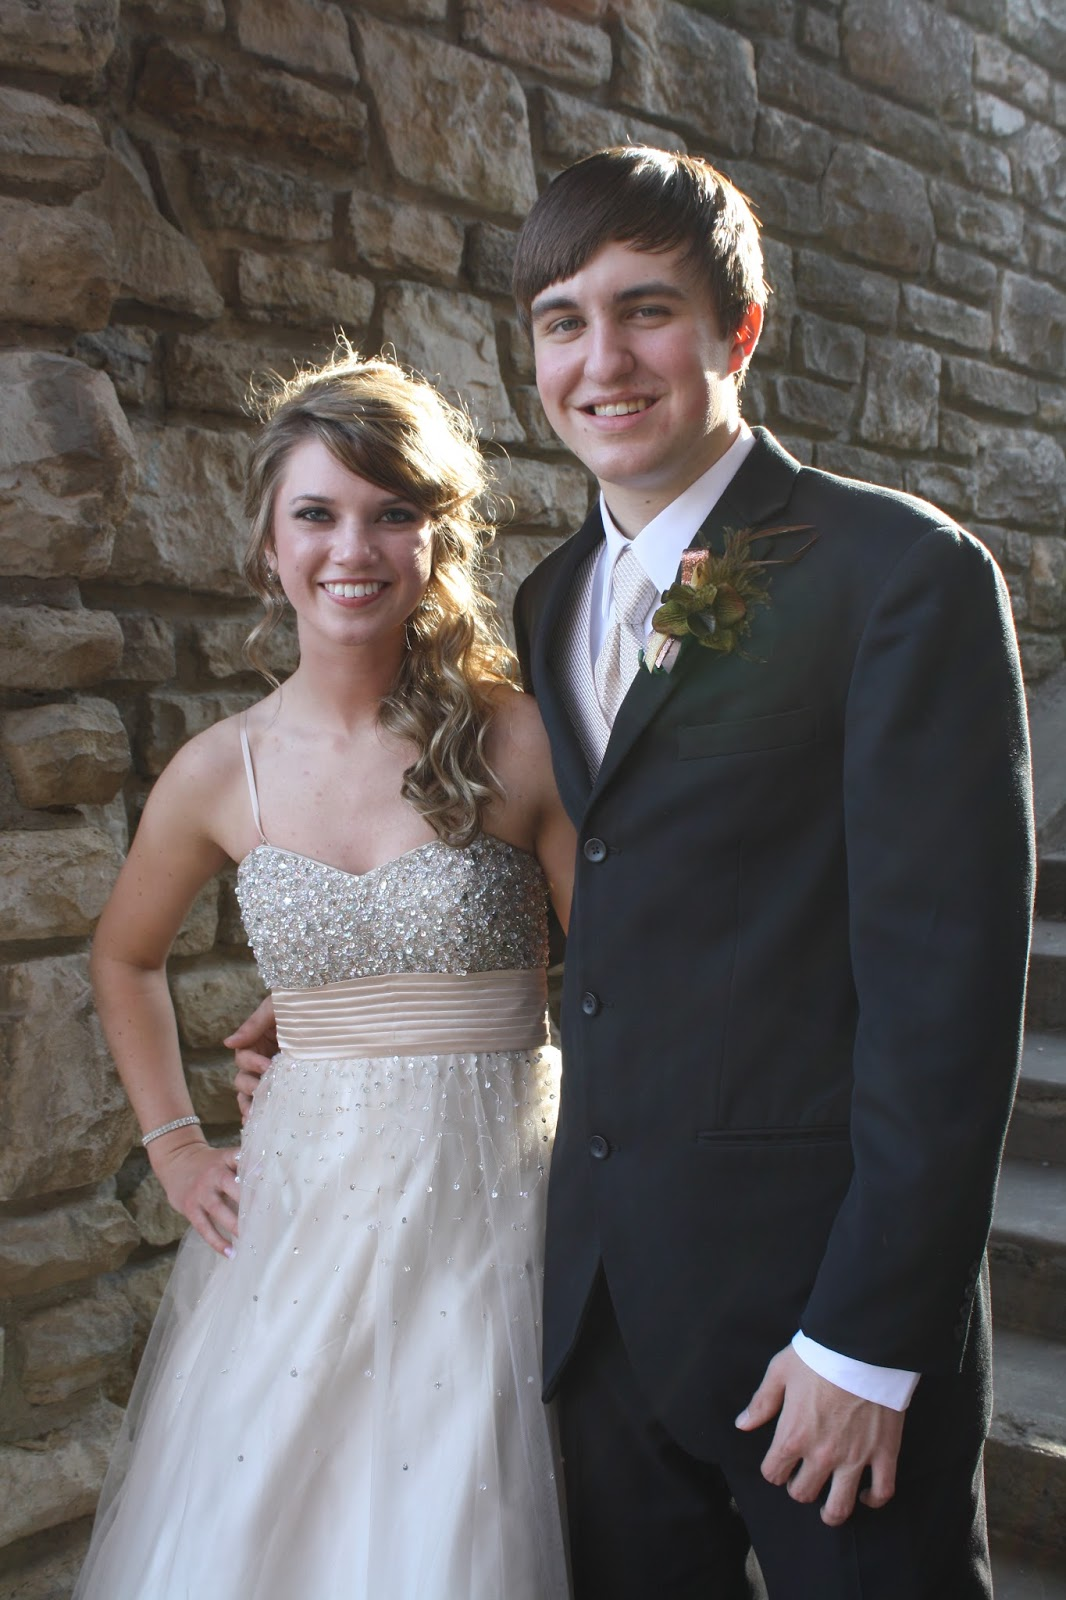 prom dating If you have been dating the girl you want to ask to the prom night, and you know she is going to accept your proposal, but you just want to make it a little different while asking her out, prepare e-cards with pictures of the two of you.